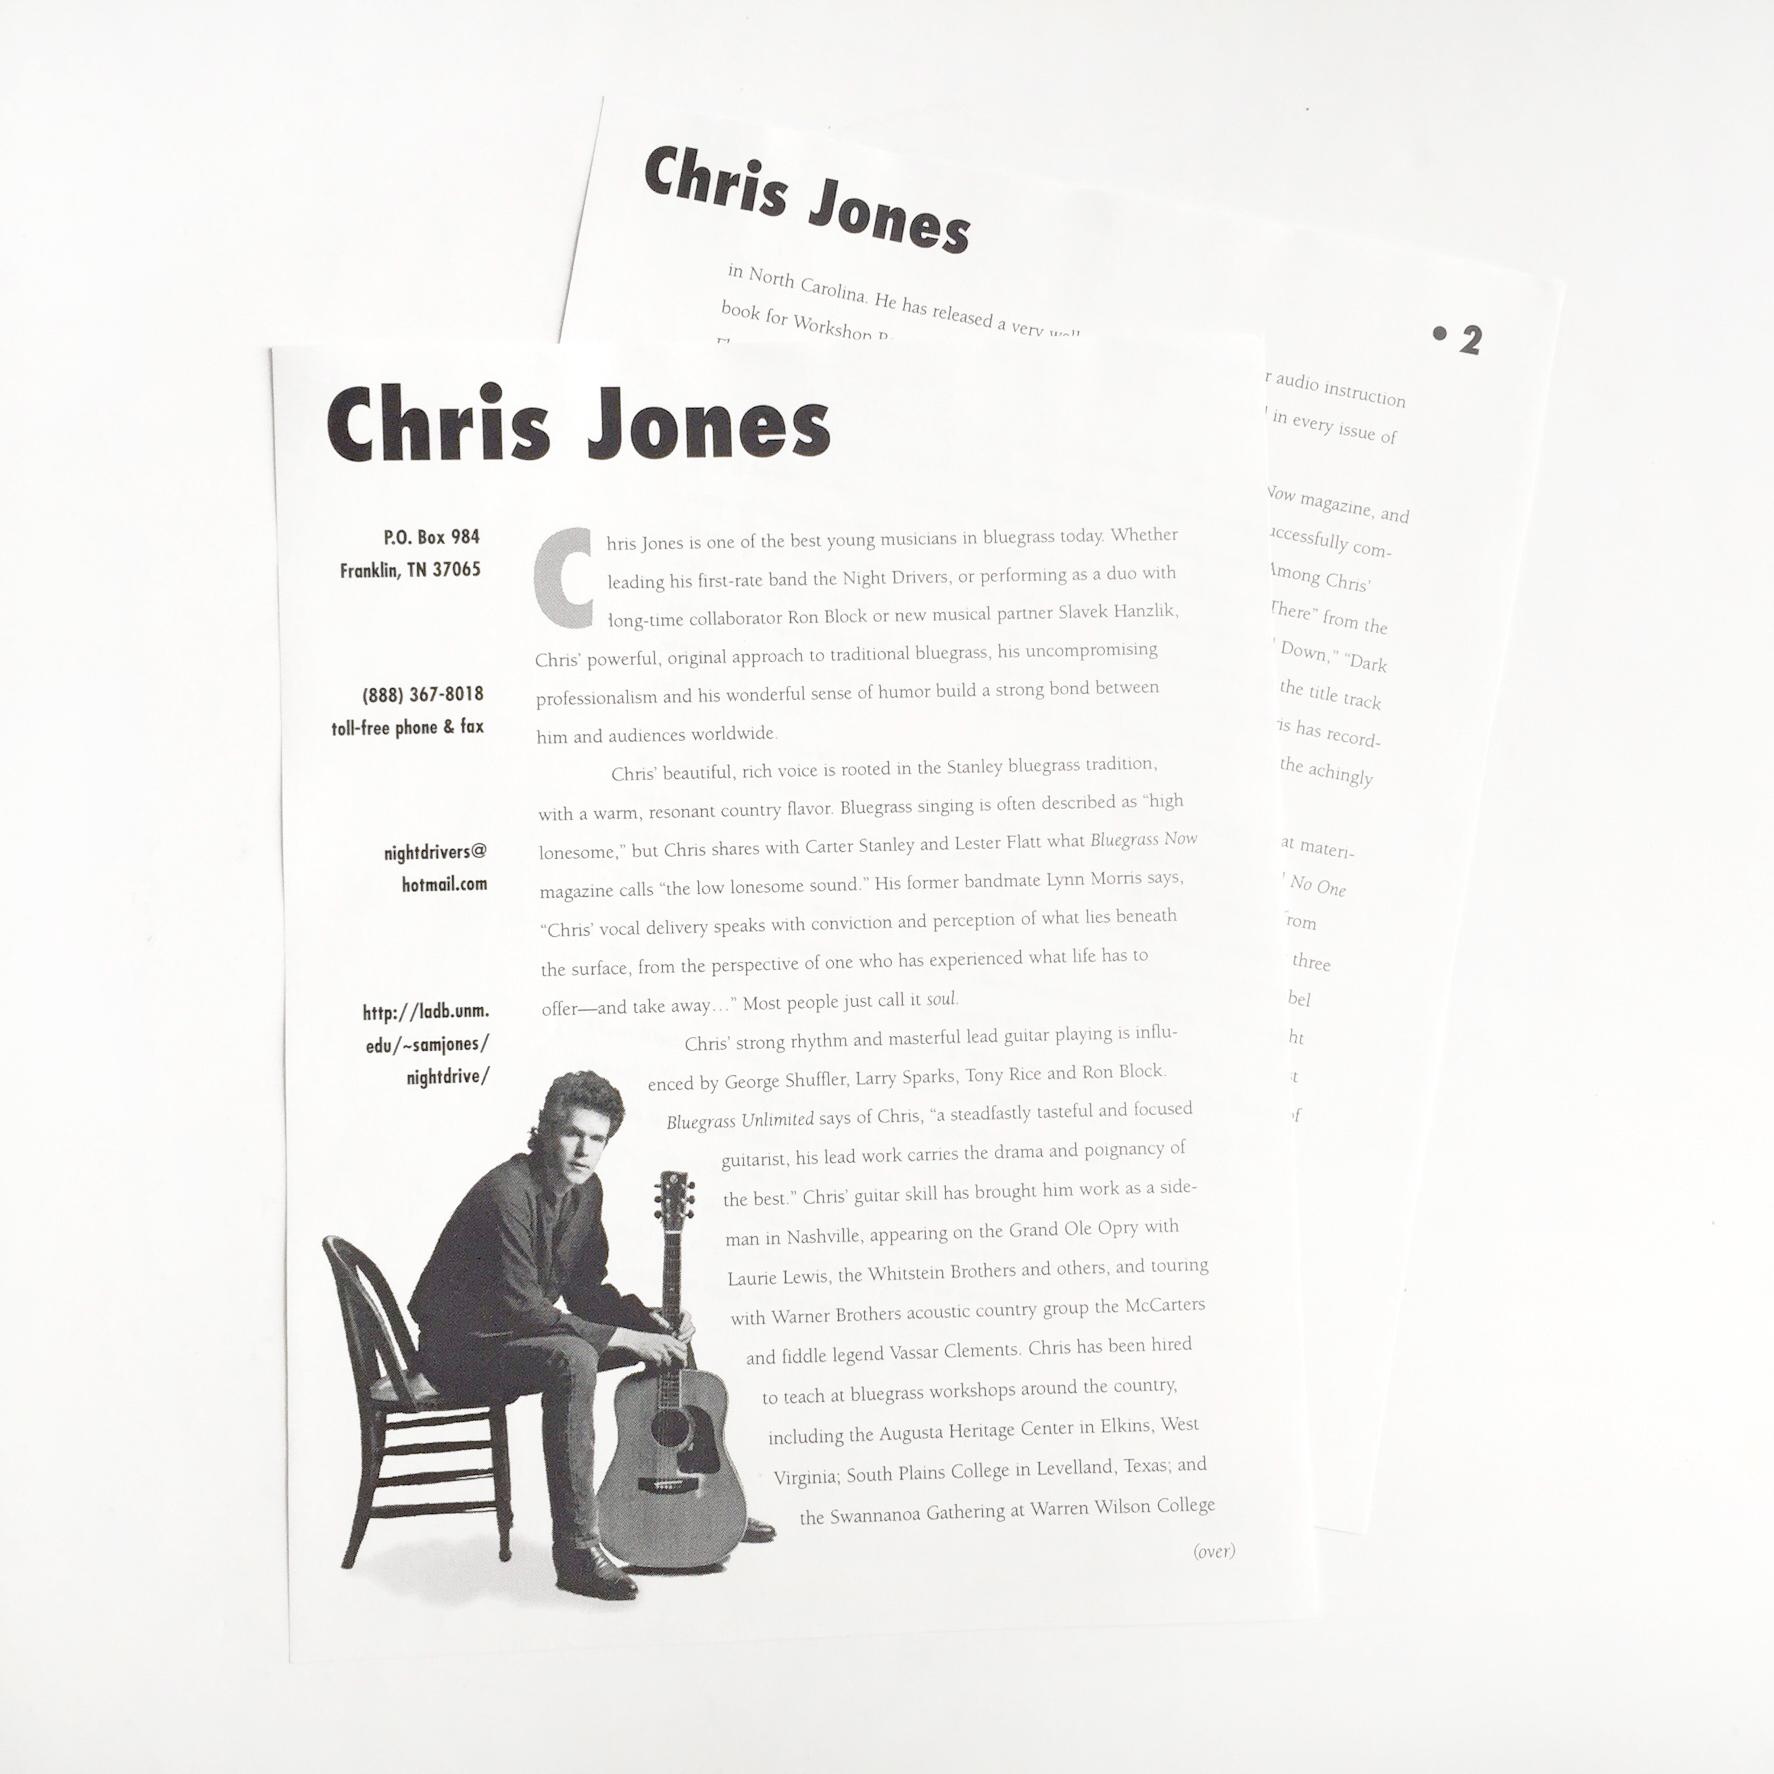 I wrote this bio for Chris early in his career, and it's a good example of economical printing. With just one color ink and no bleed, it could be reproduced on any copy machine. I used the same design elements but a different color of paper for each piece of the promo kit, and the finished product was quite handsome.